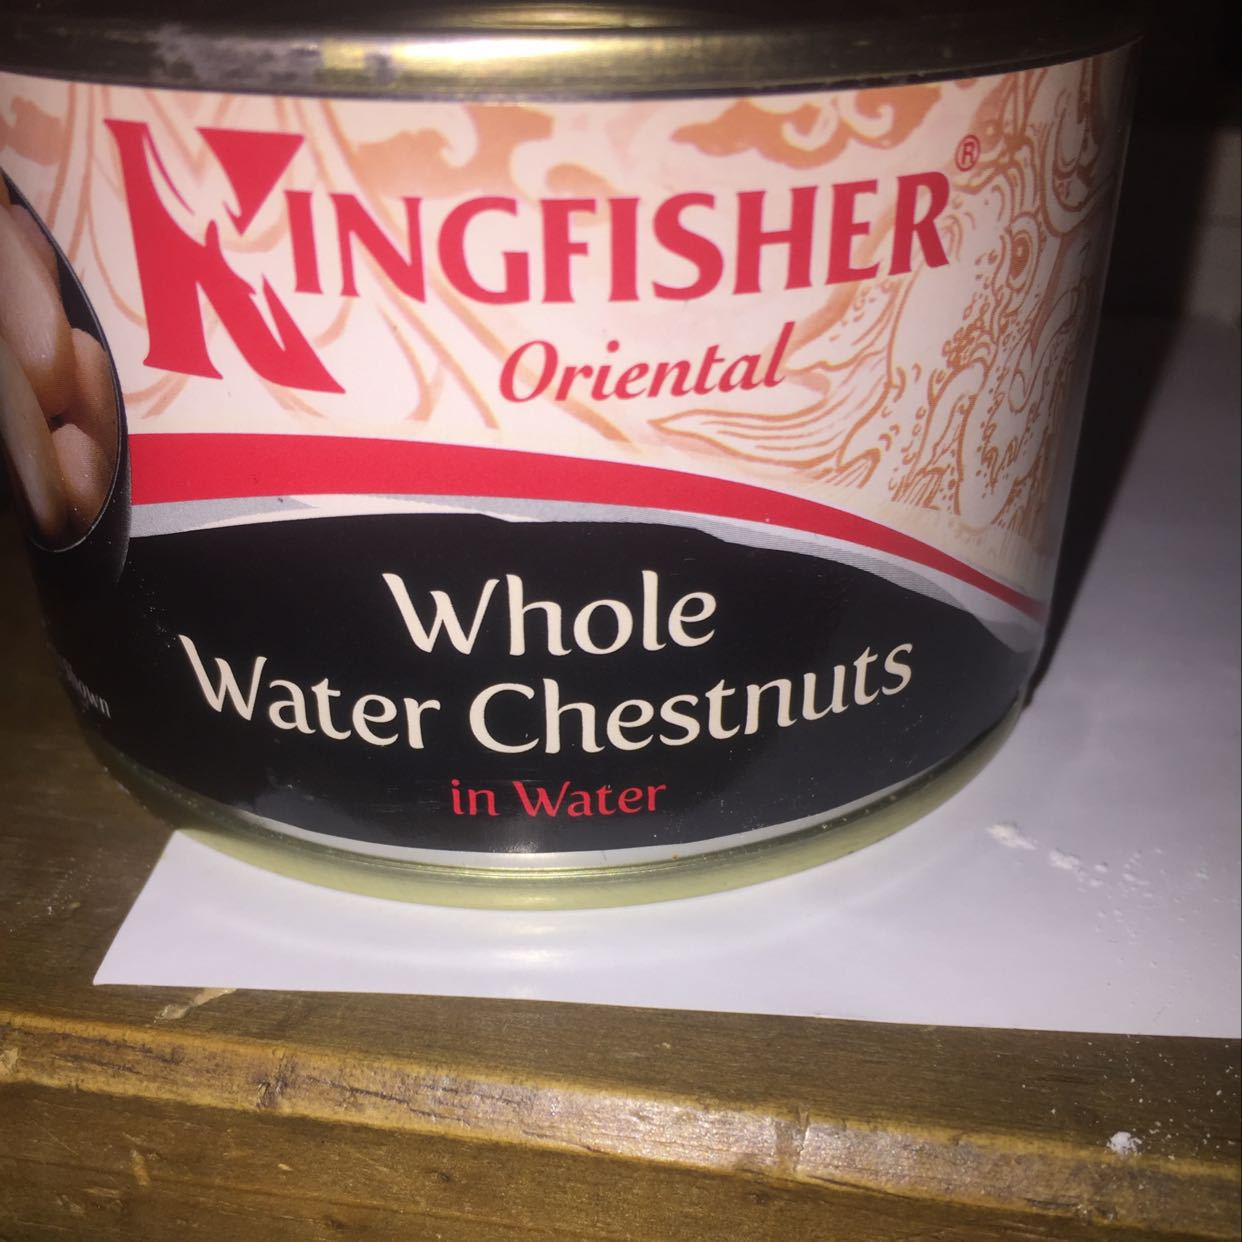 Kingfisher while water chestnuts